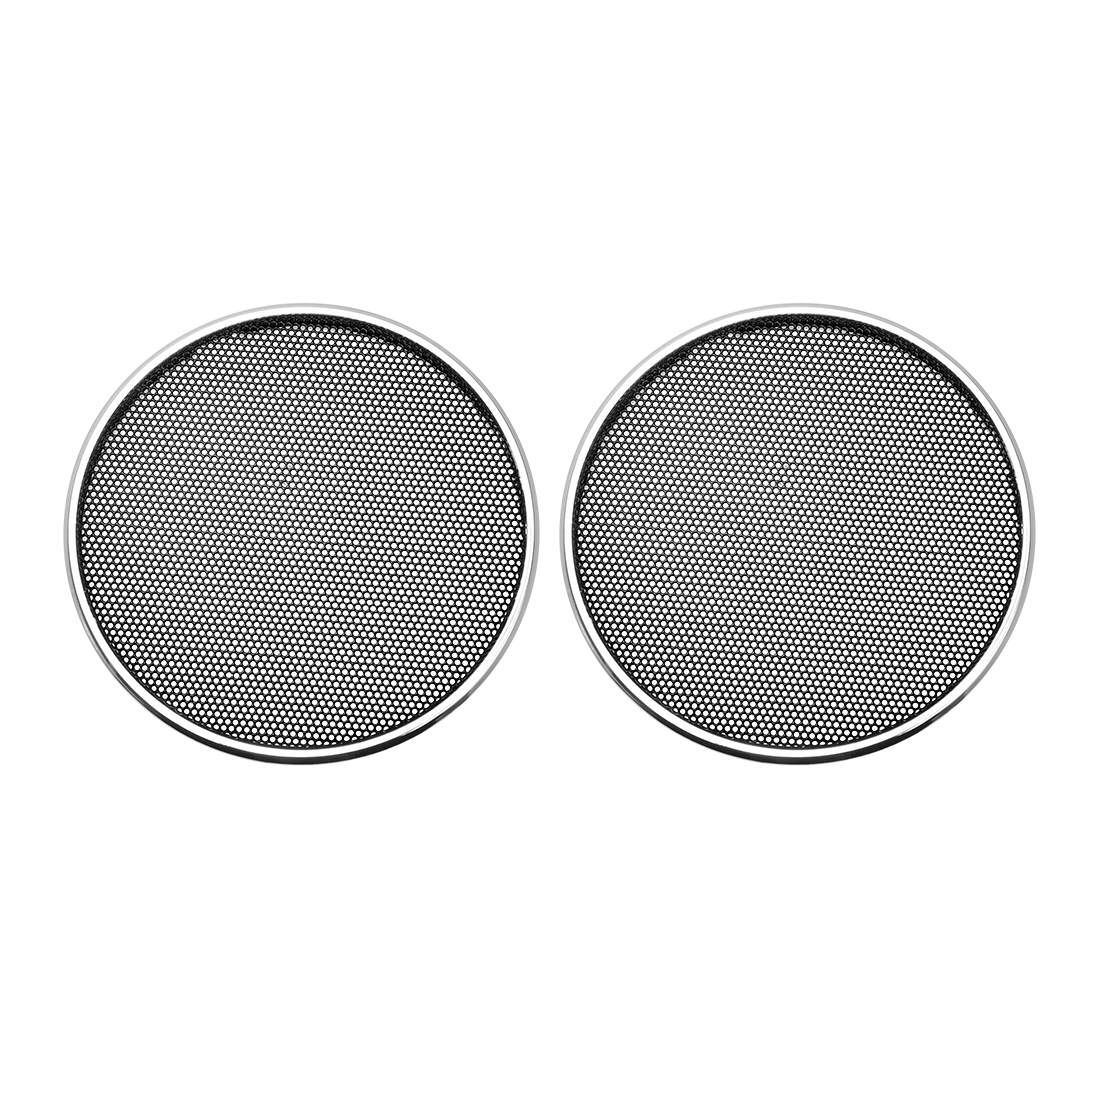 "2pcs 2"" Speaker Grill Mesh Decorative Circle Woofer Guard Protector Cover Silver"